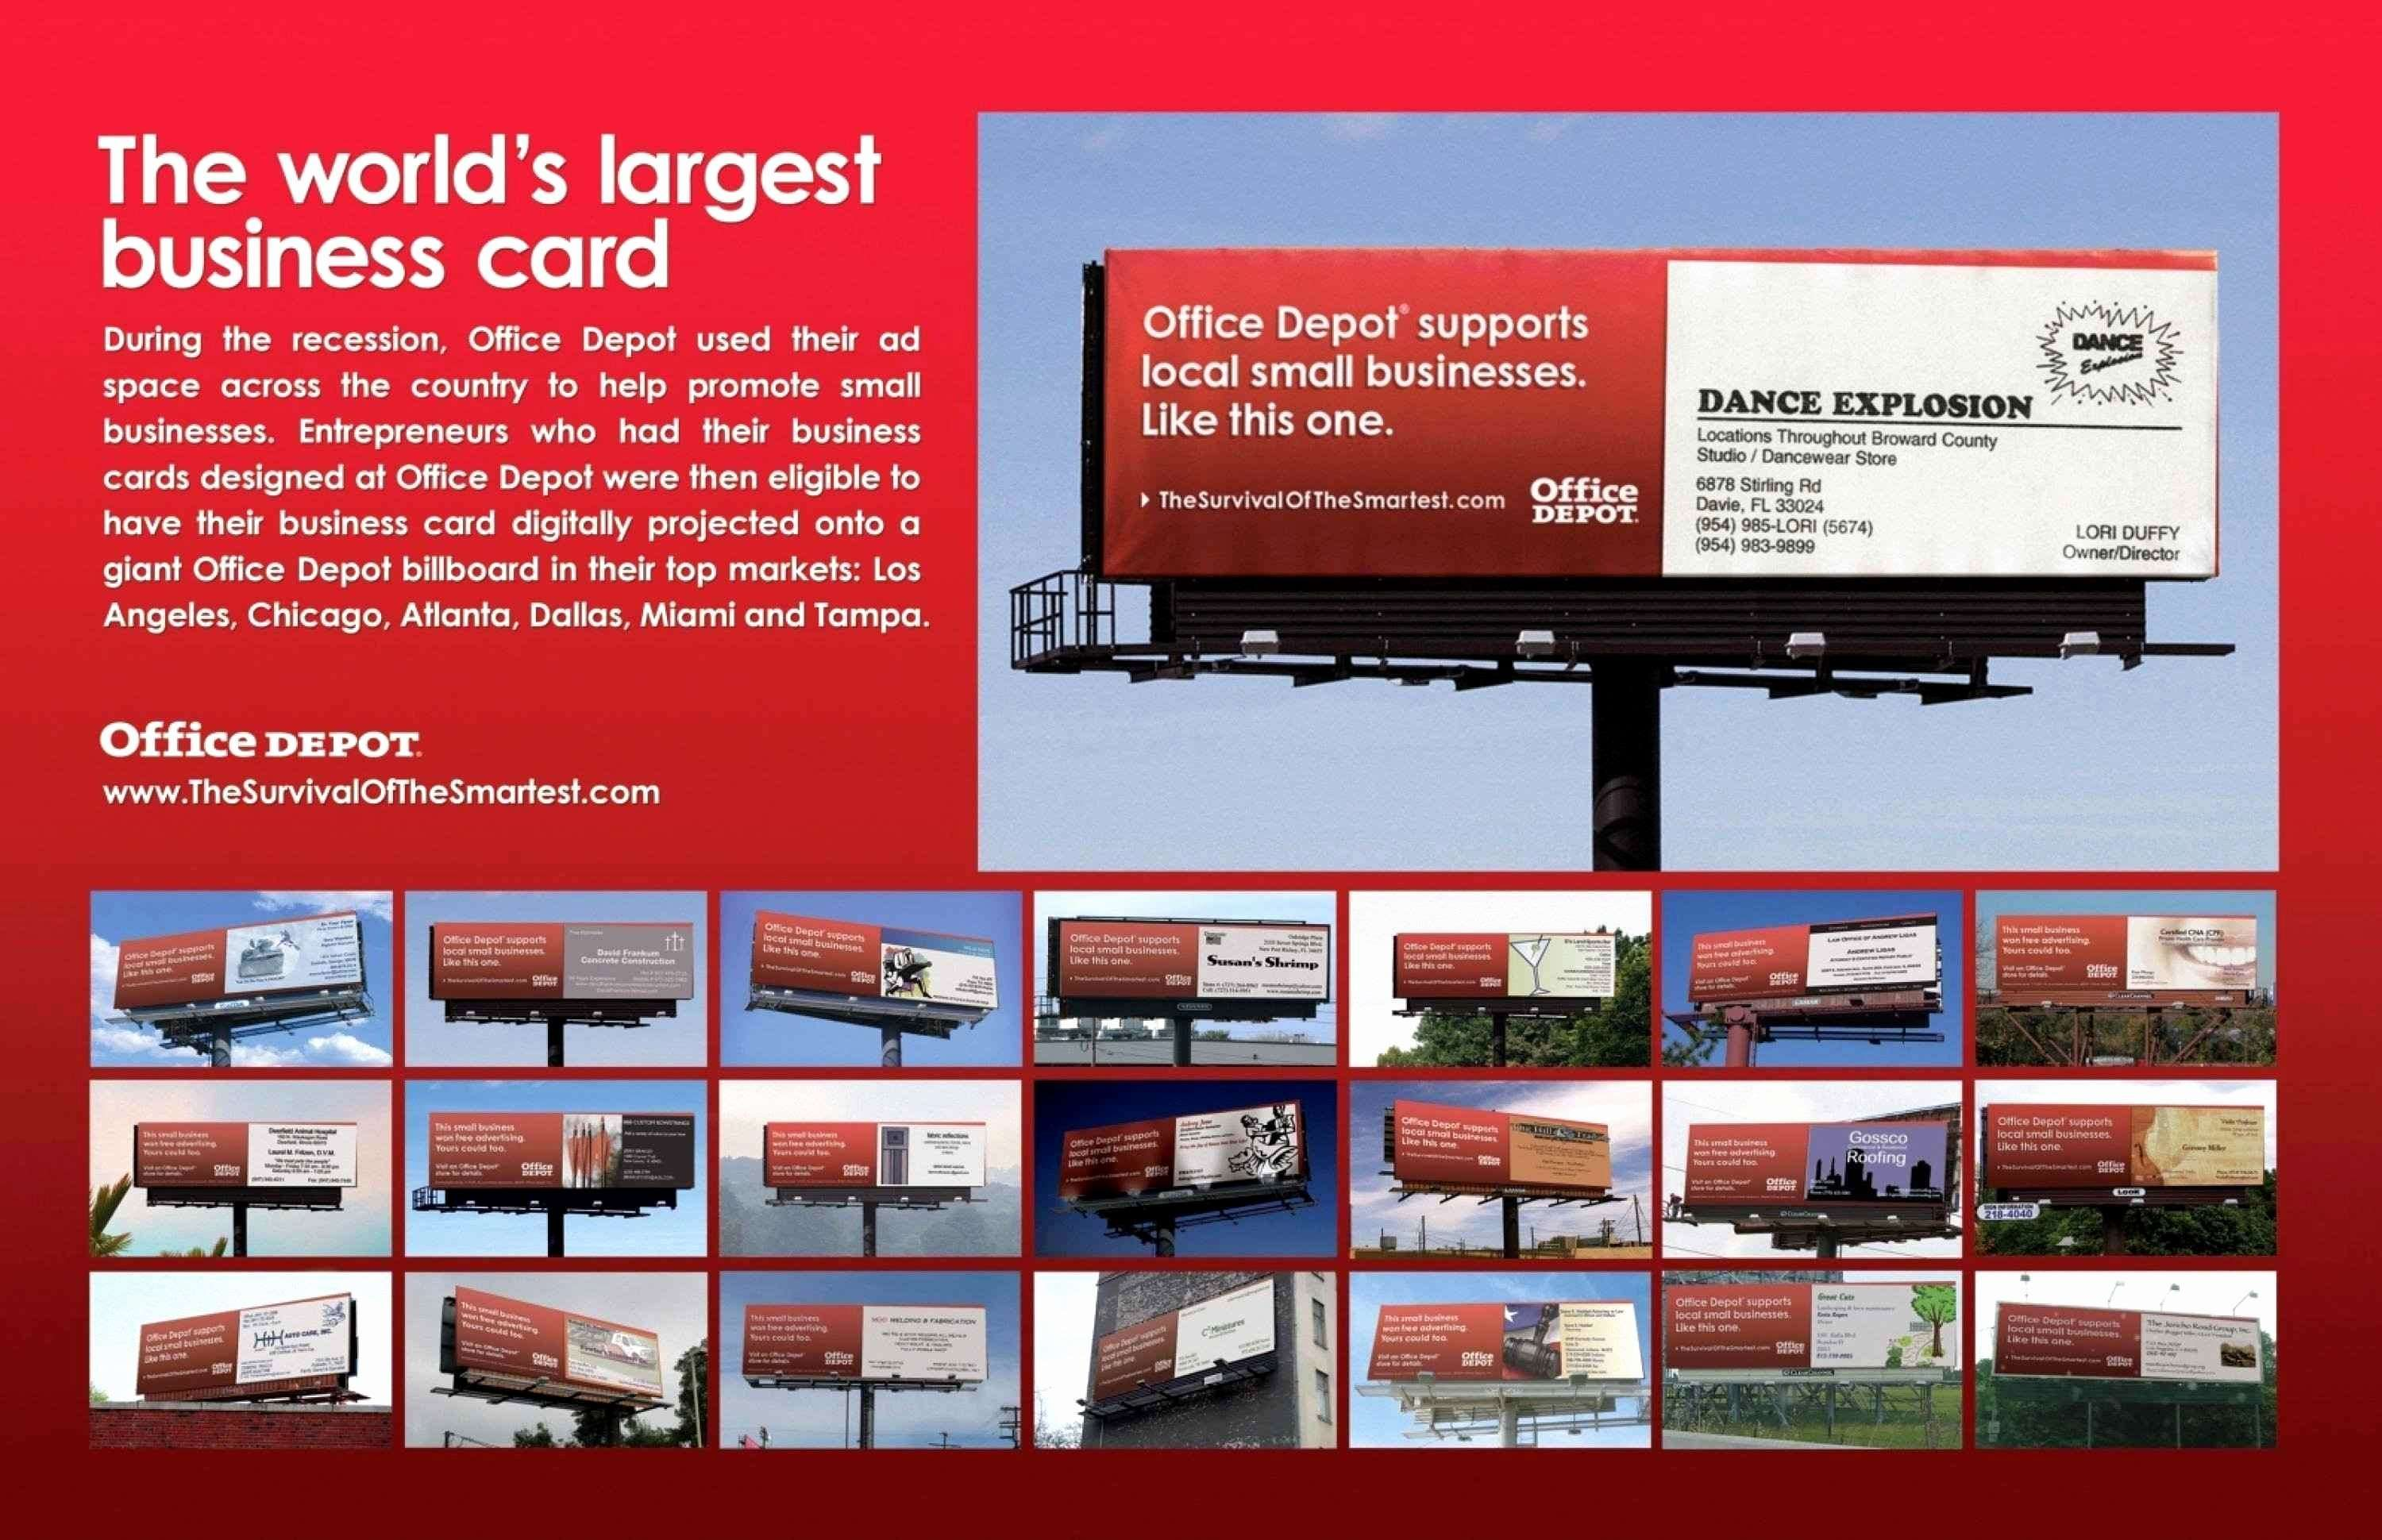 20 Office Depot Business Cards Template Full Size of fice